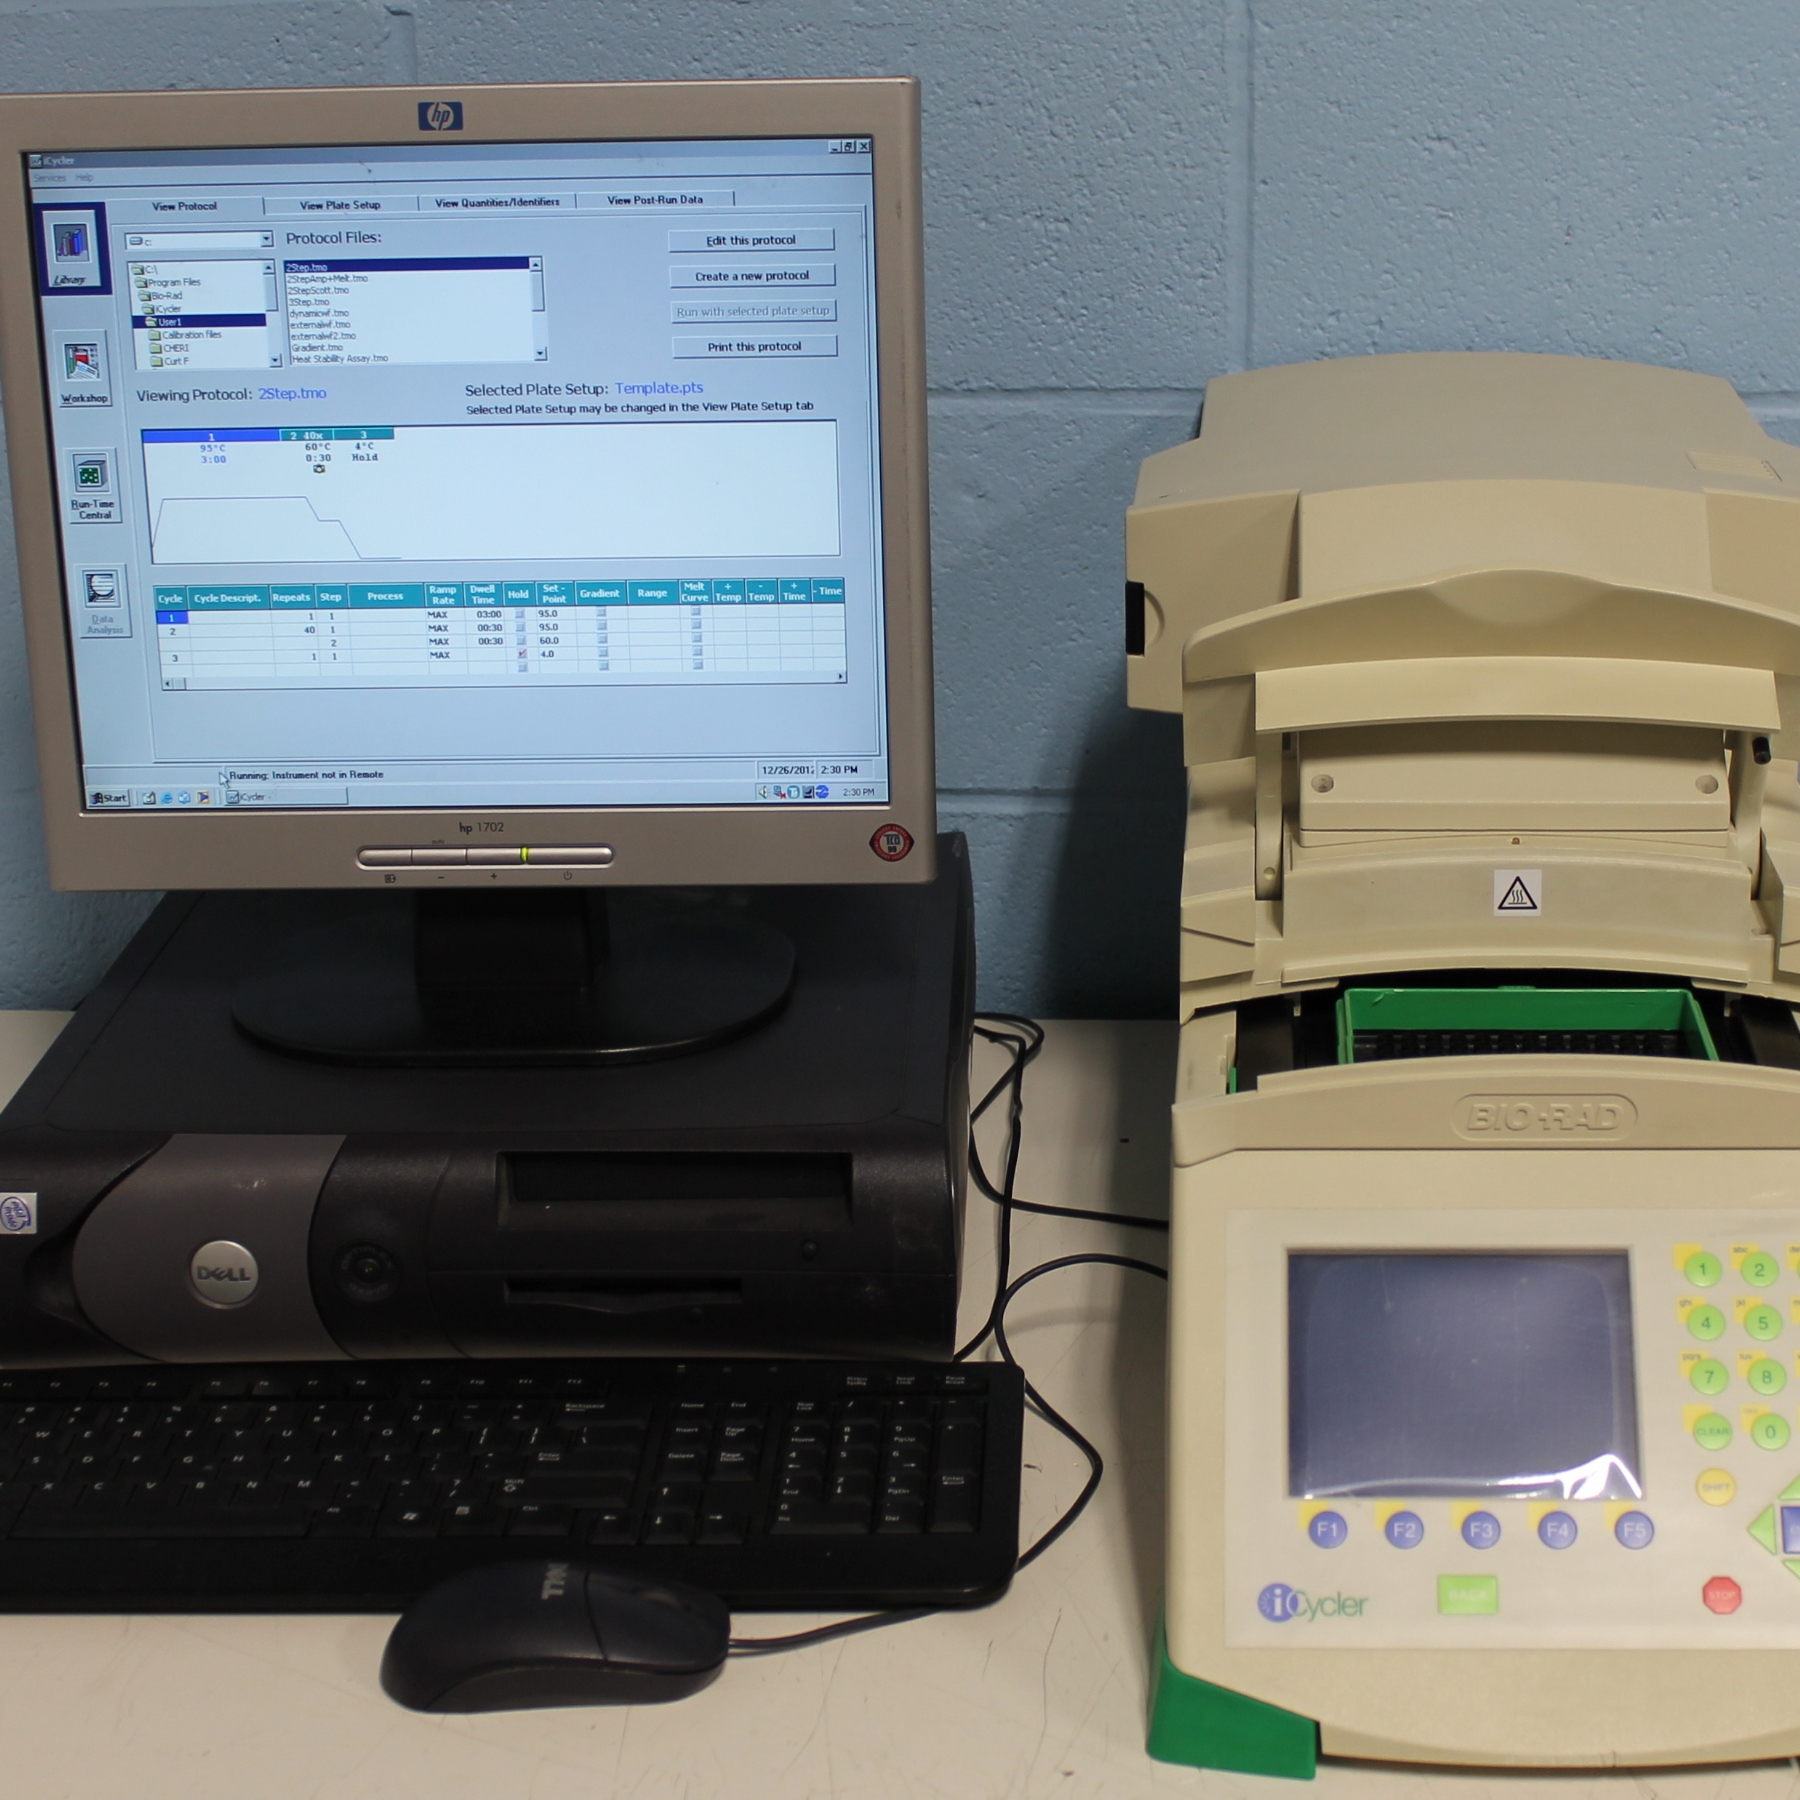 Bio-Rad iCycler Thermal Cycler with Bio Rad Icycler Optical Module Image